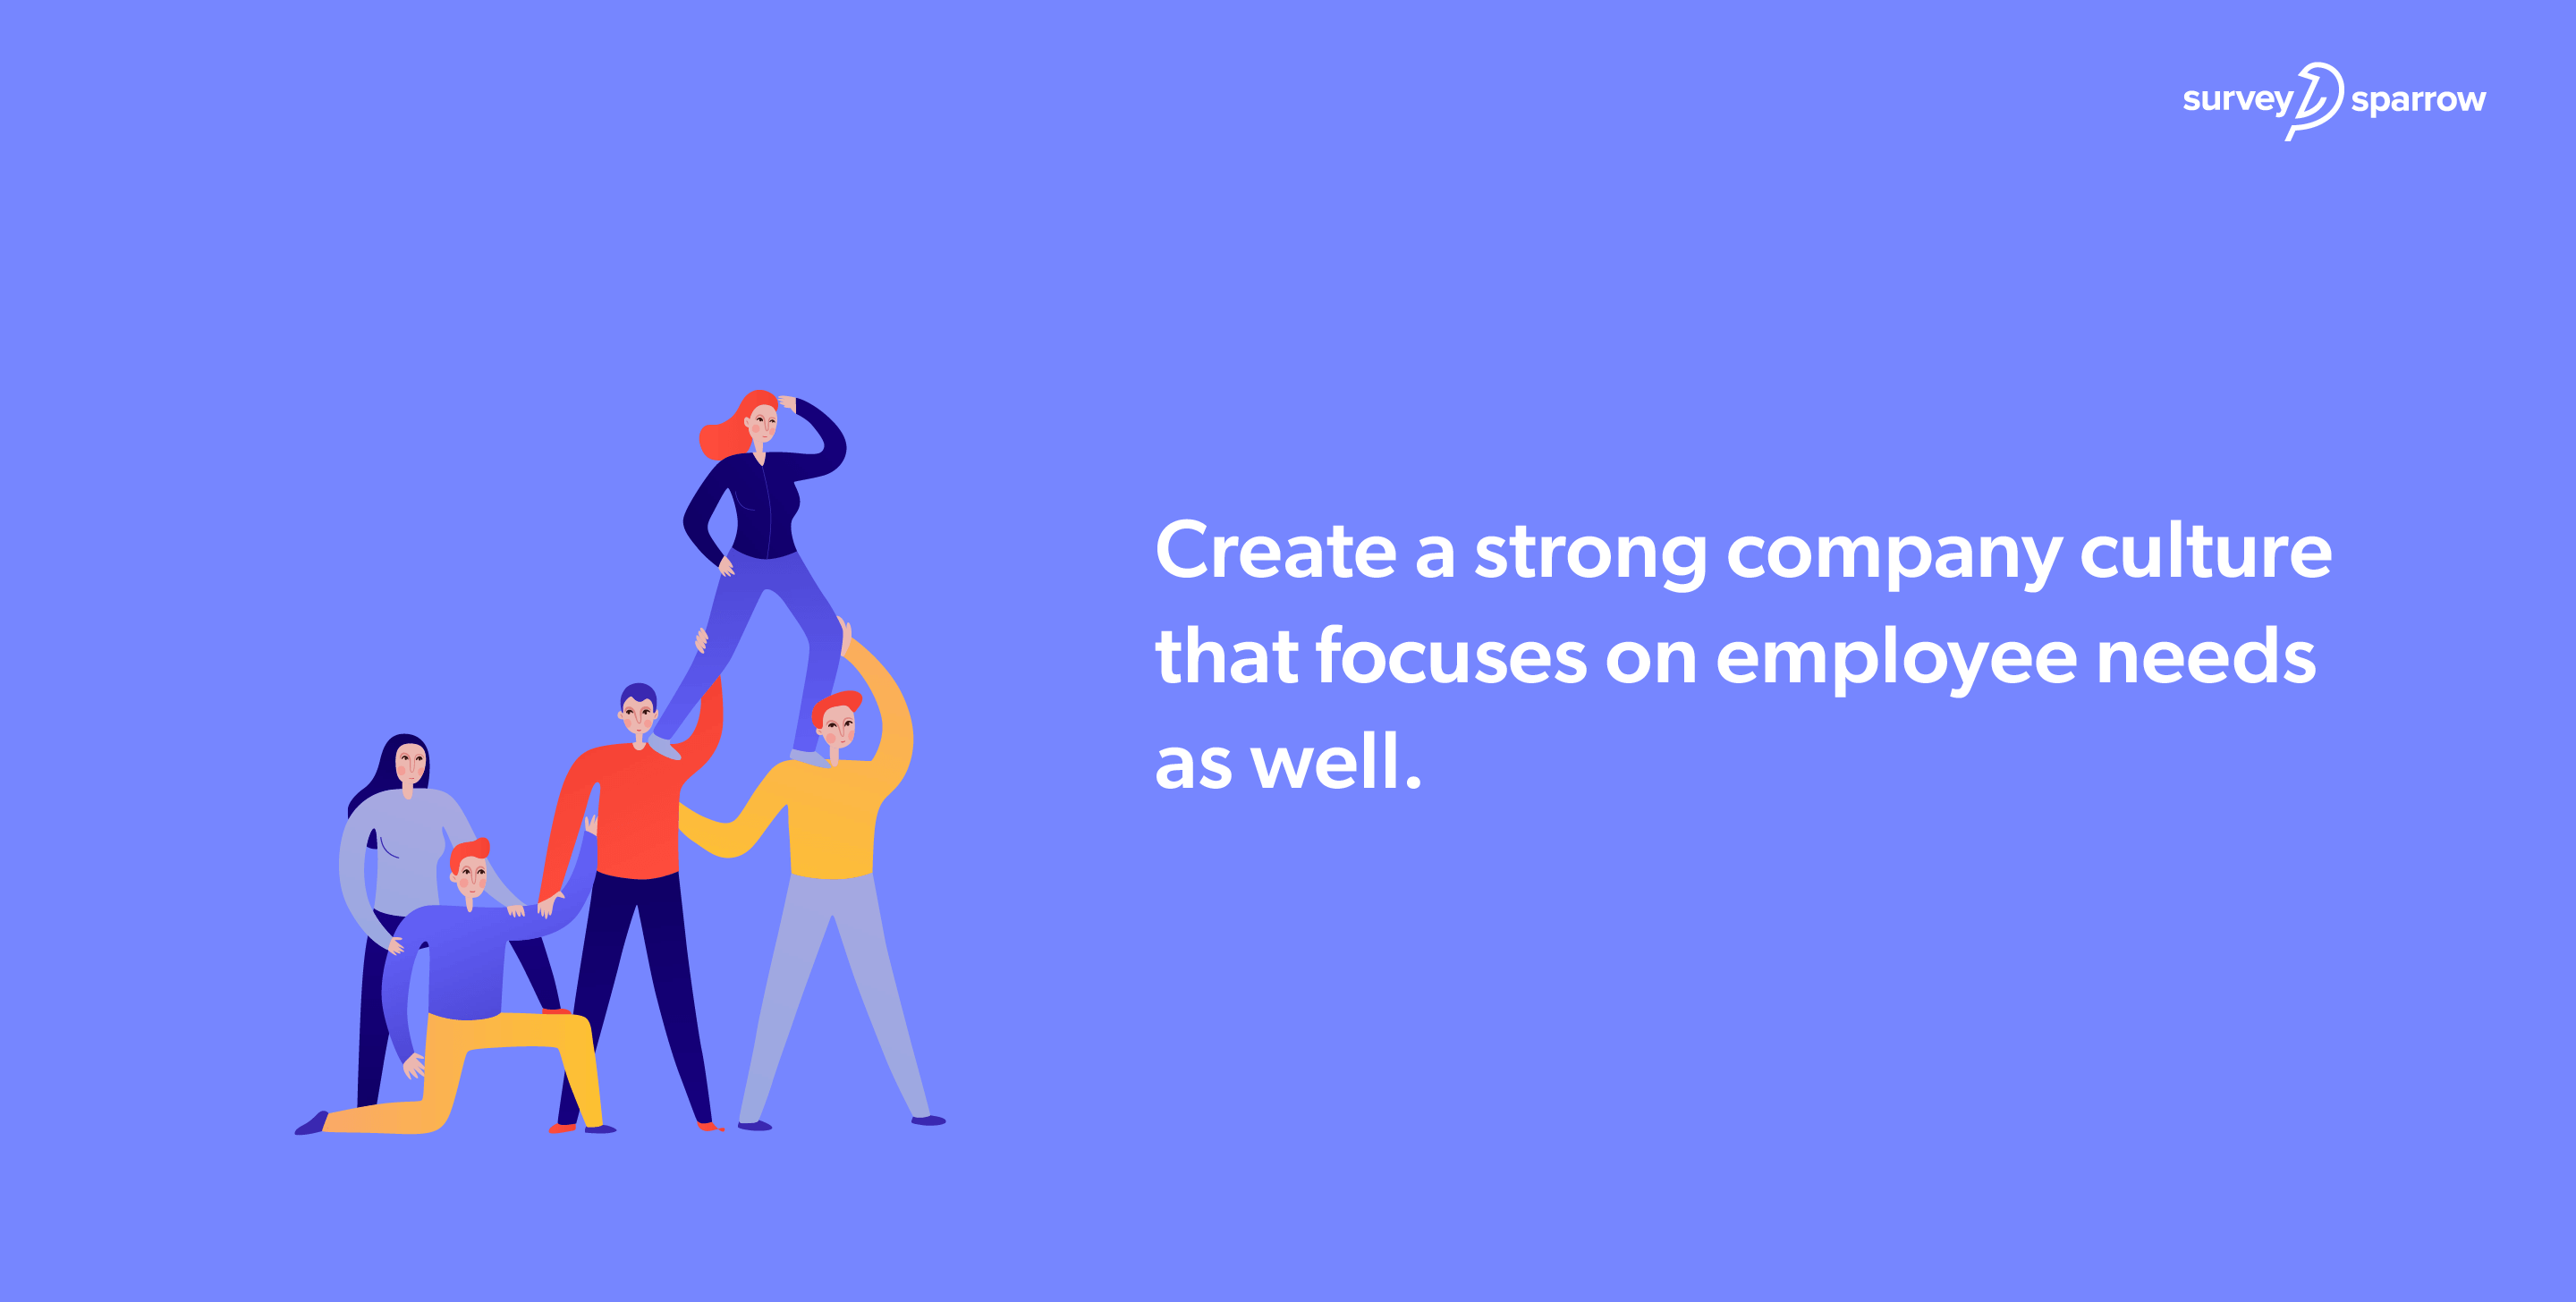 Create a strong company culture that focuses on employee needs as well.